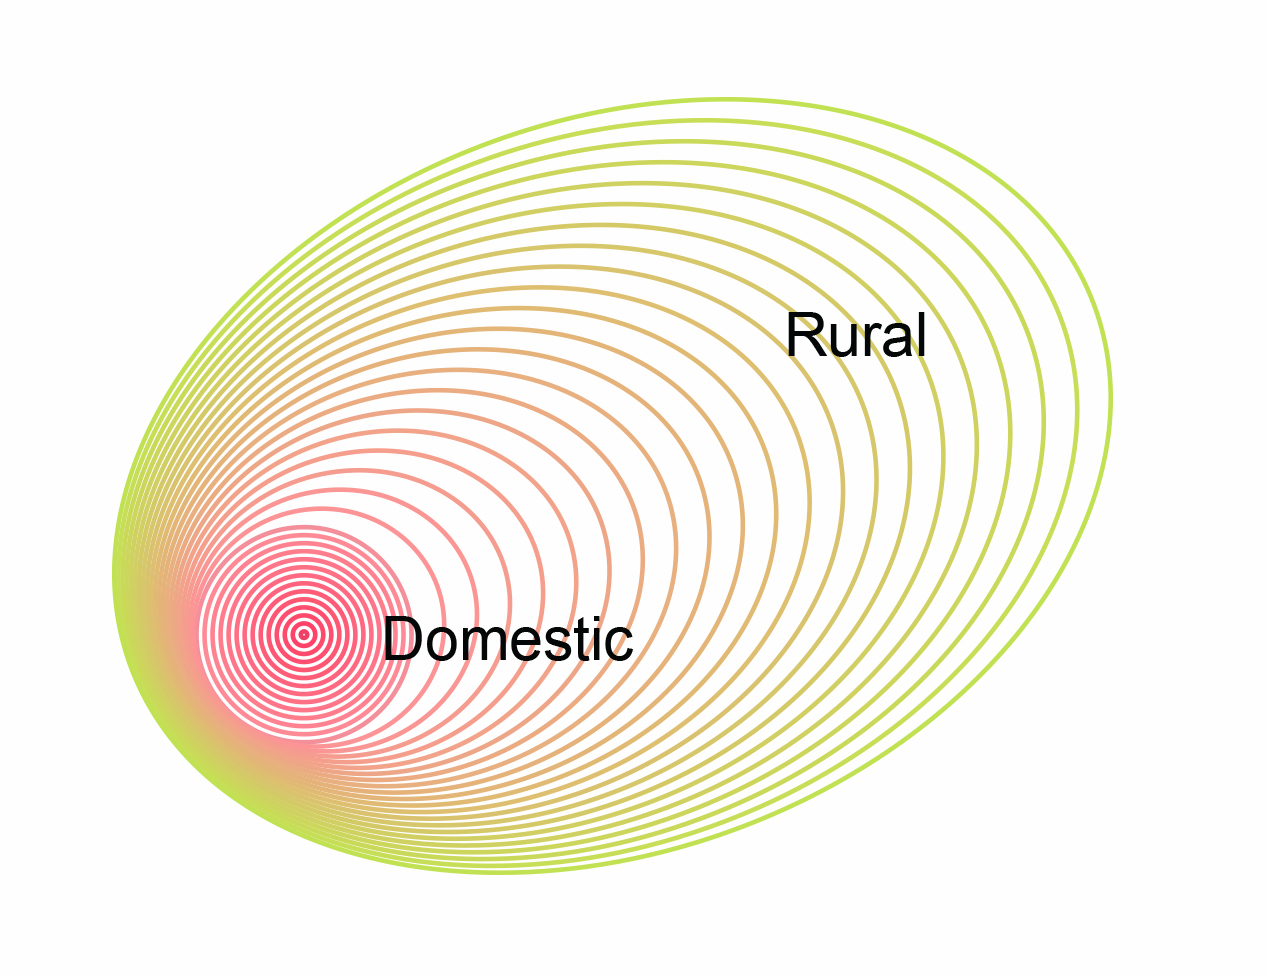 diagram of rural and domestic